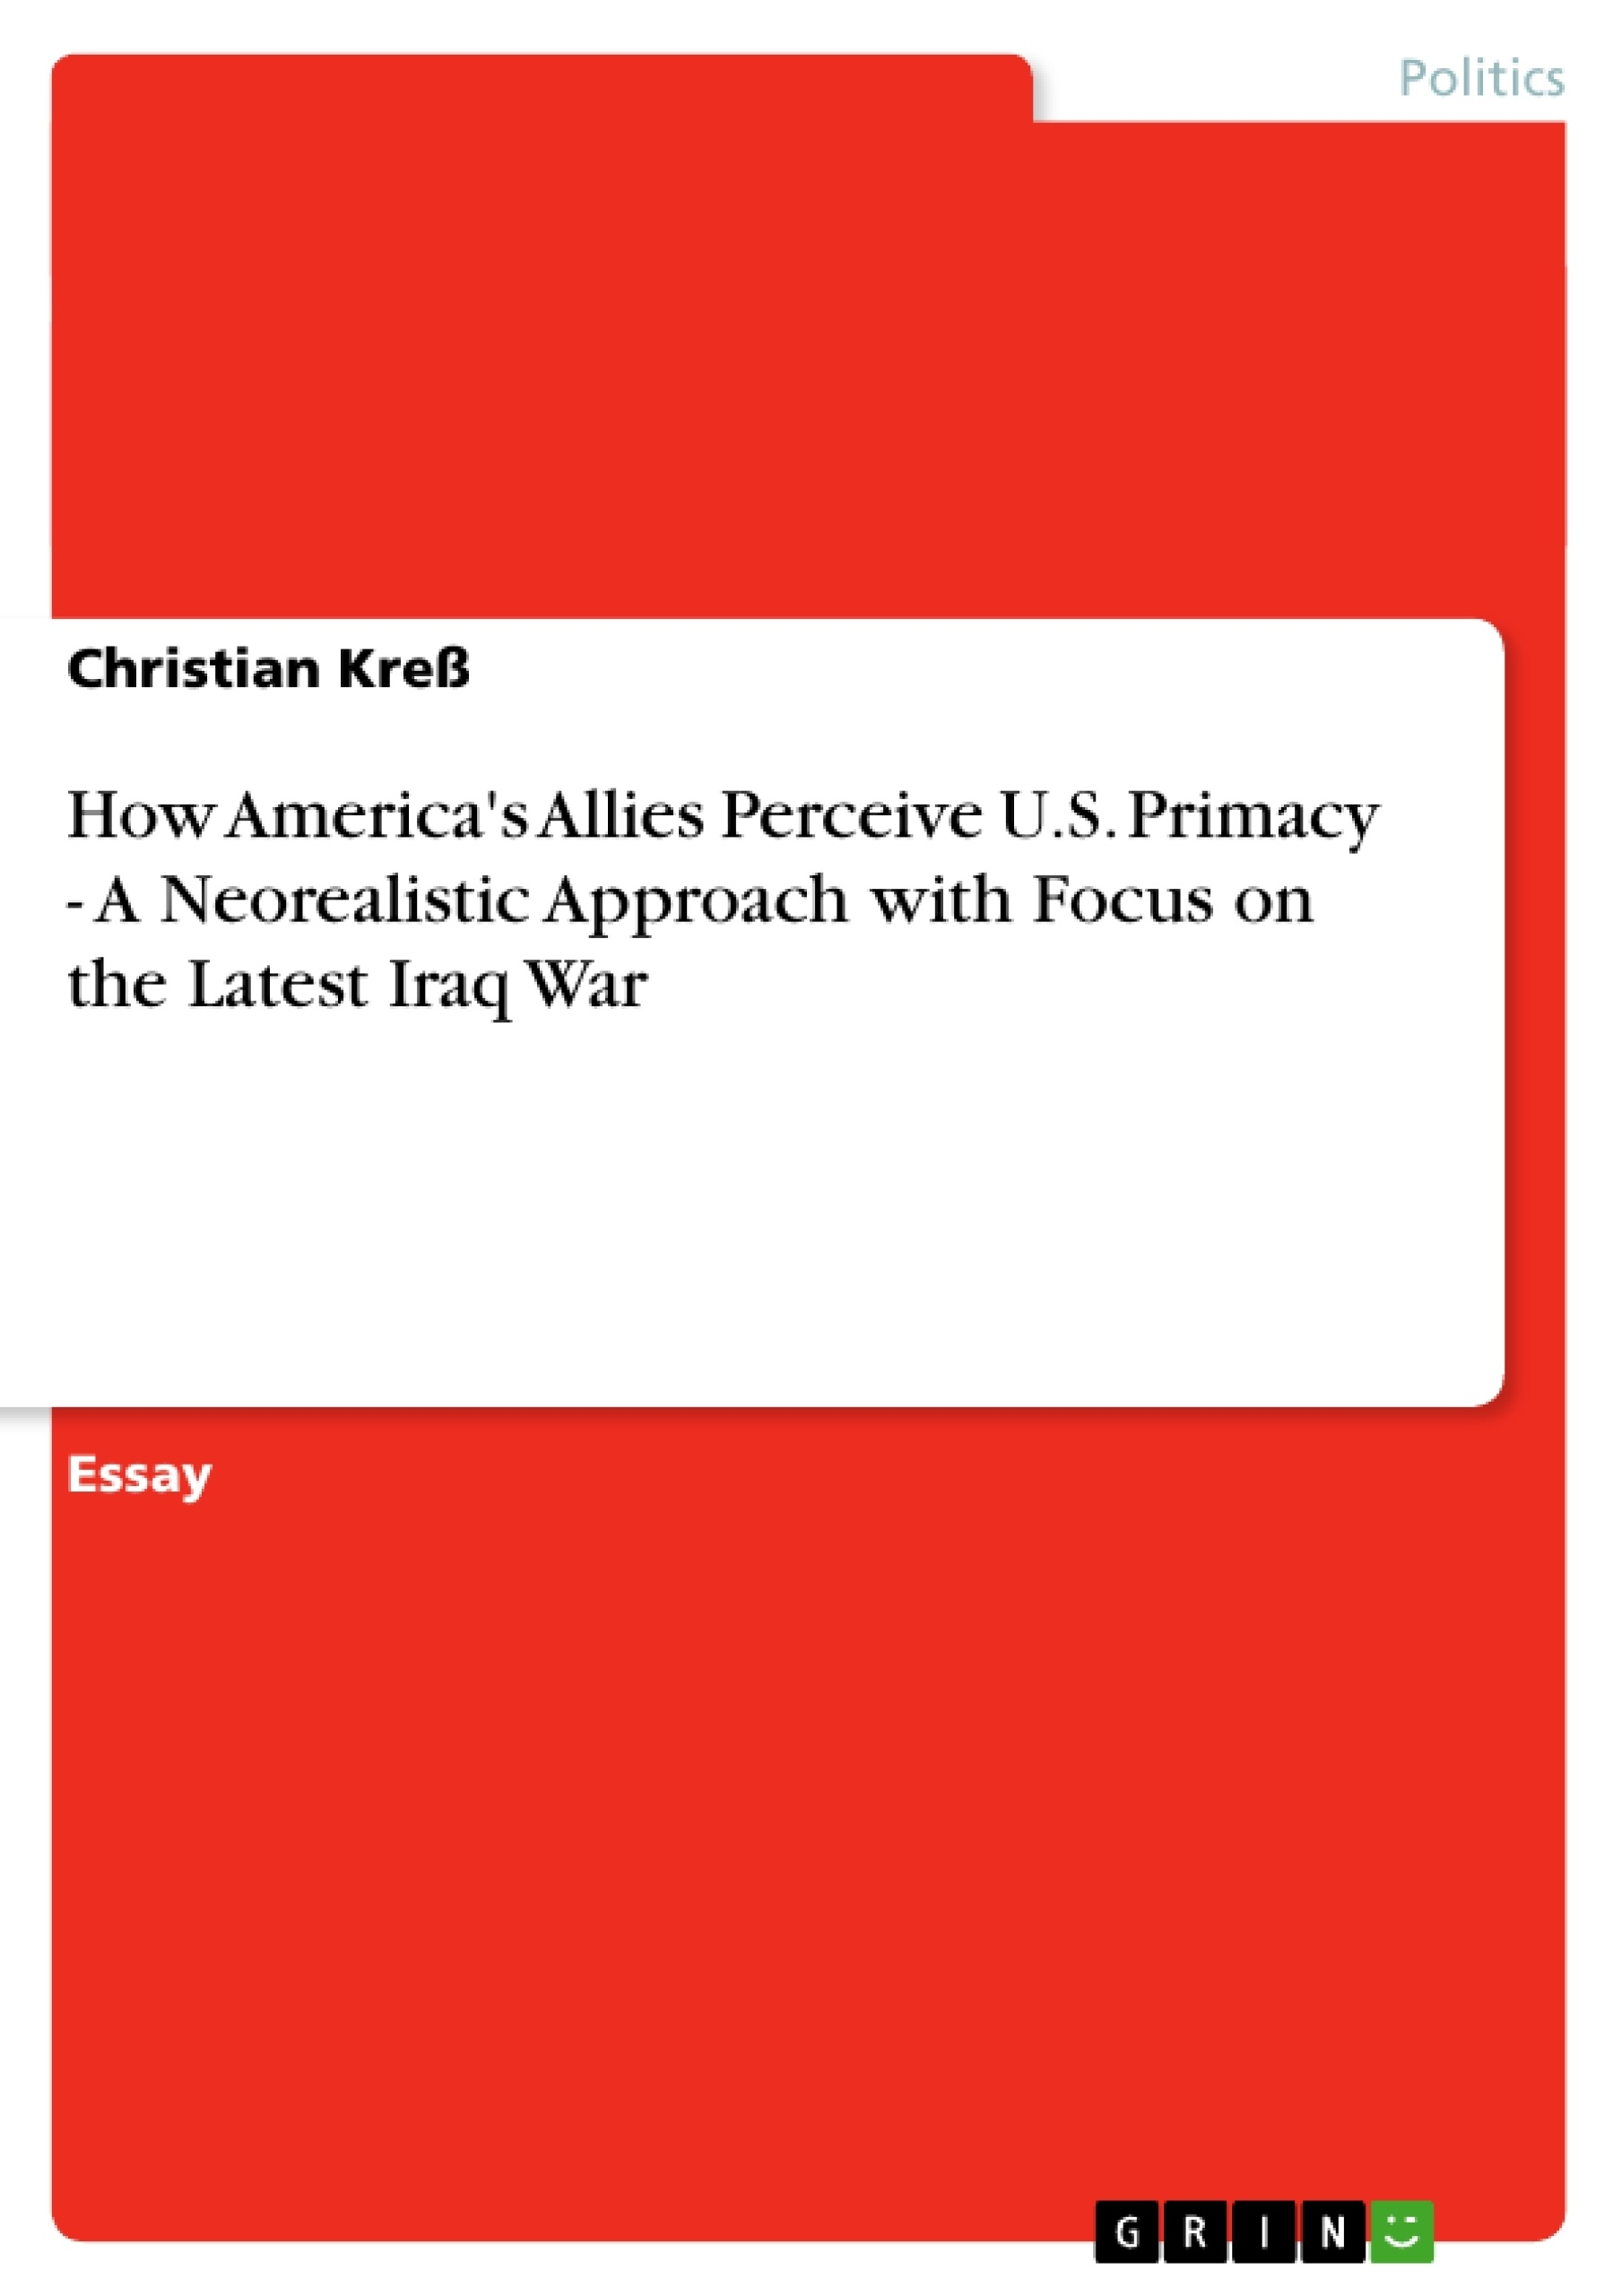 Title: How America's Allies Perceive U.S. Primacy  -  A Neorealistic Approach with Focus on the Latest Iraq War